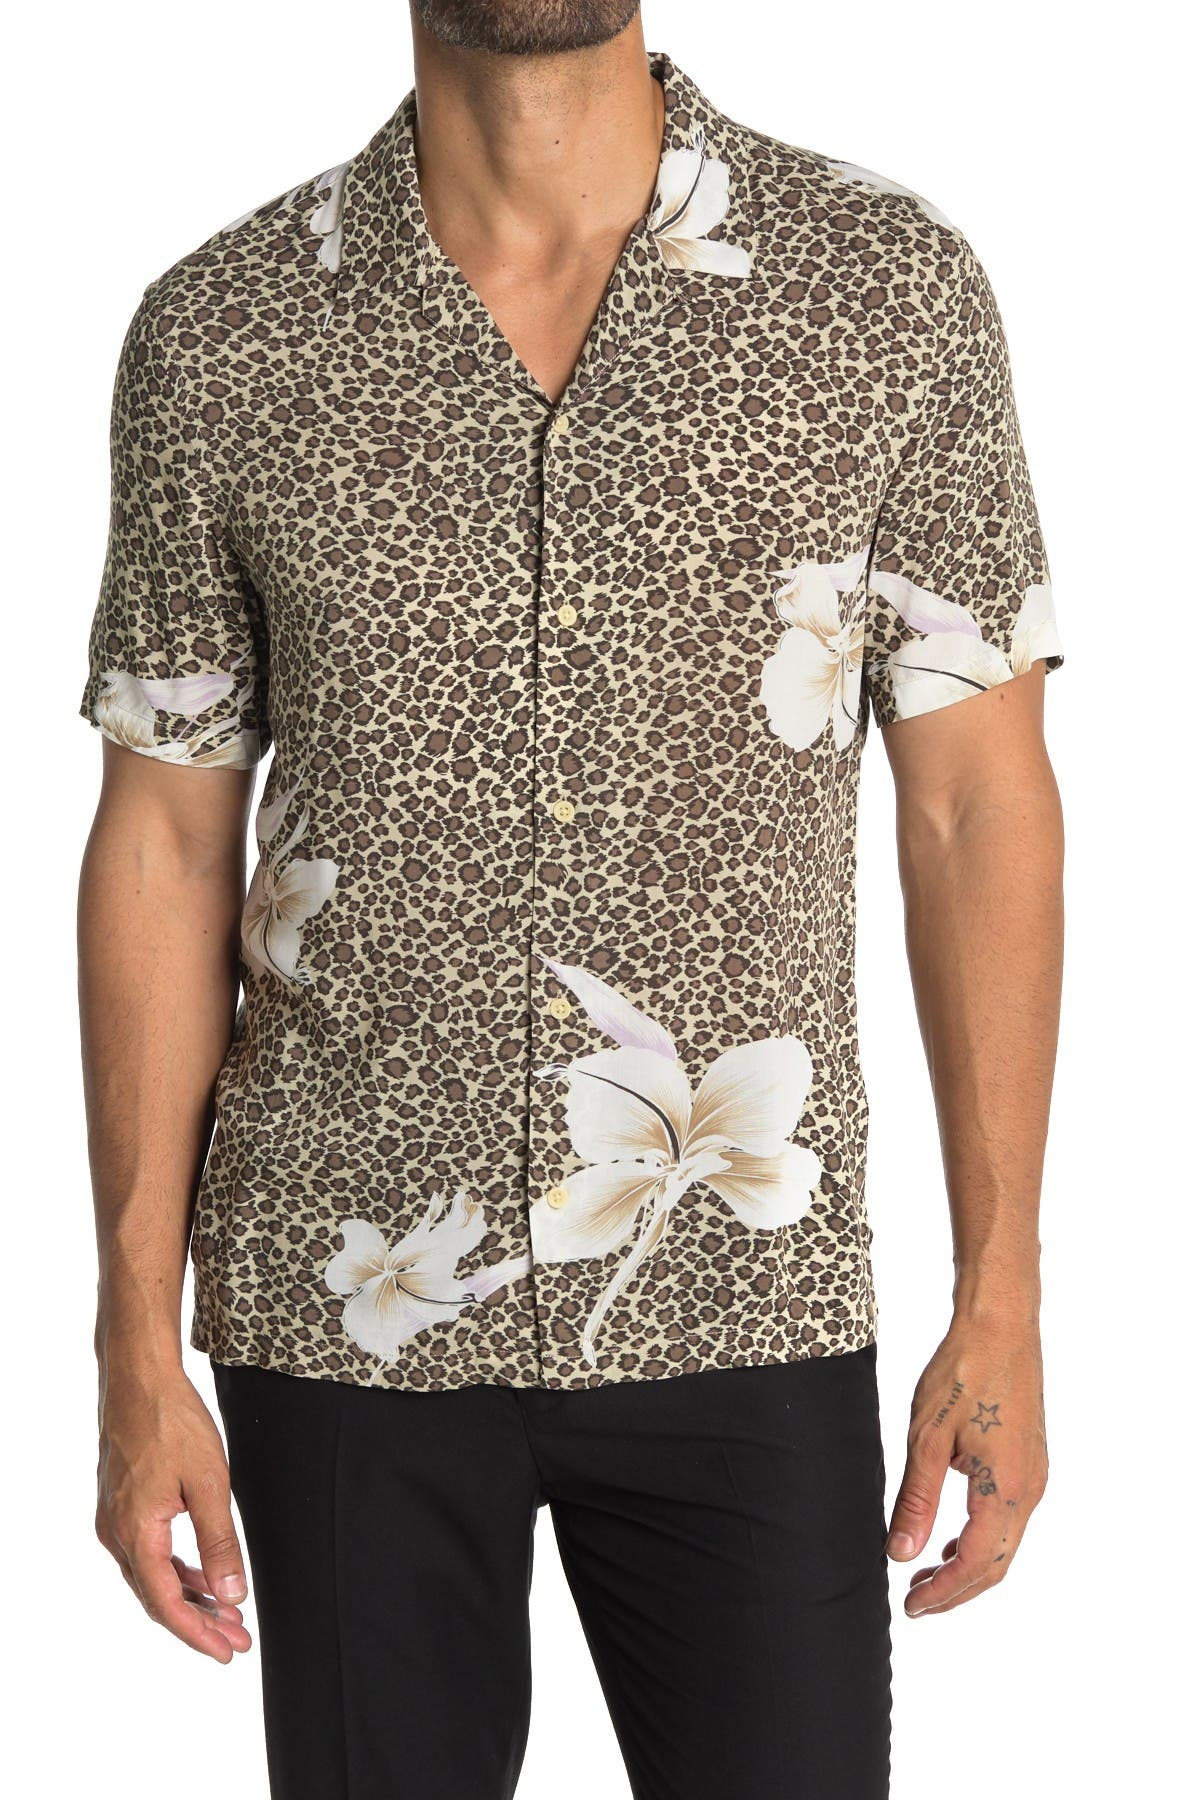 Image of ALLSAINTS Lily Leopard Short Sleeve Button Front Tailored Shirt